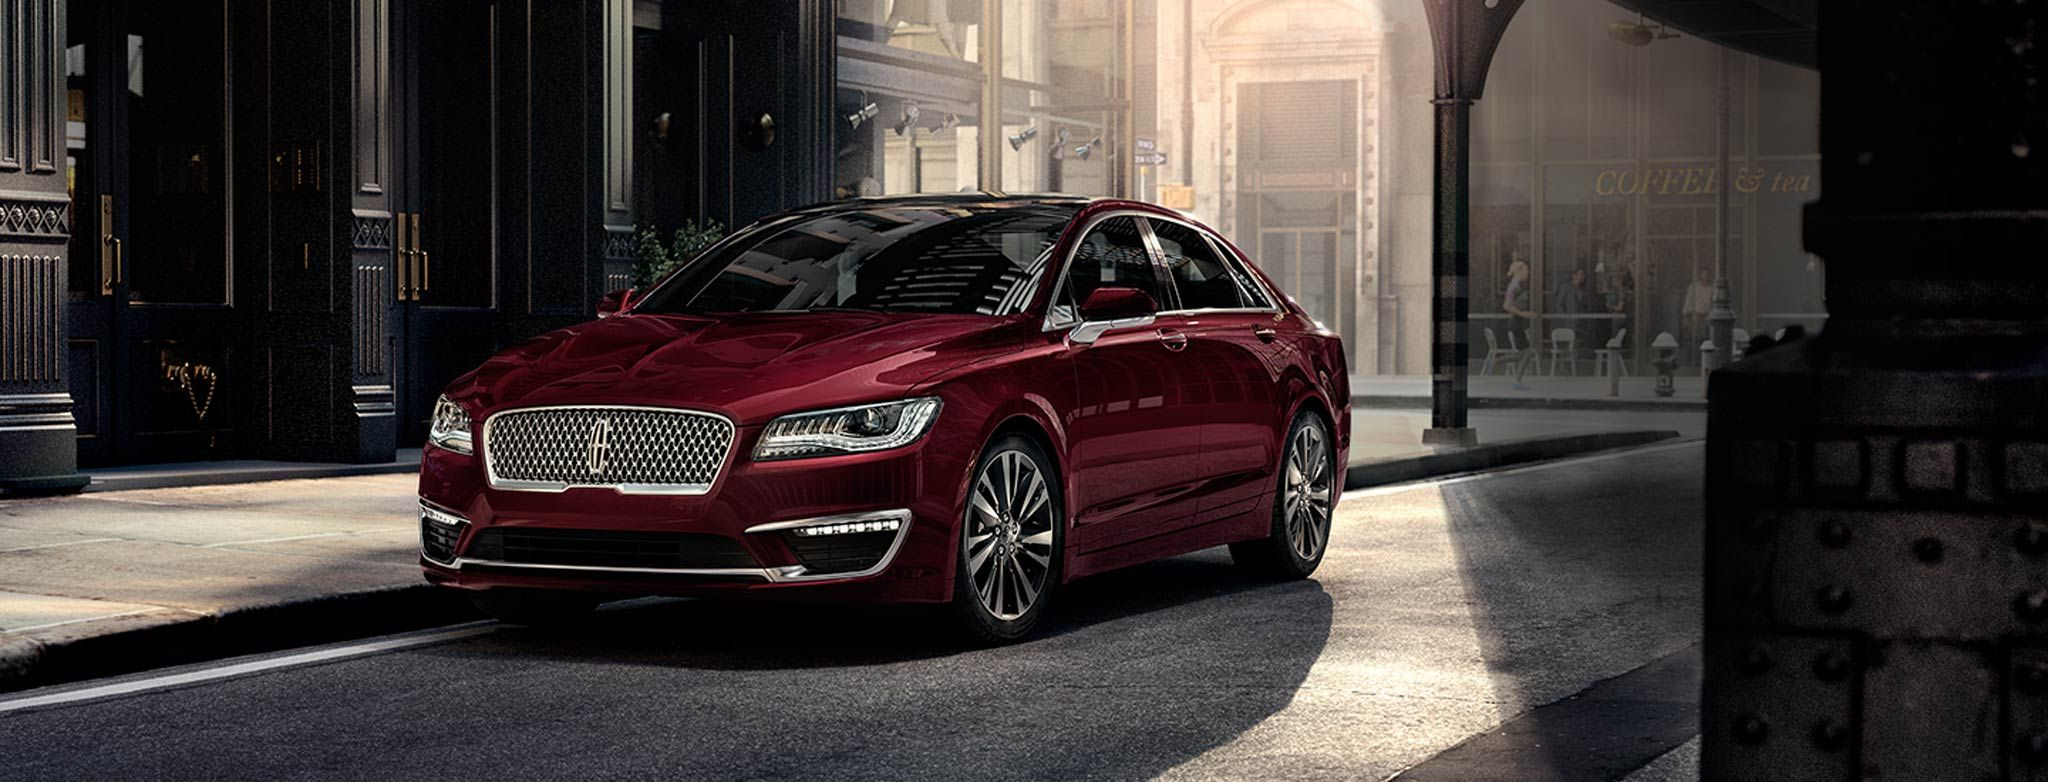 Steet Ponte Ford >> 2017 Lincoln MKZ : Lincoln Motor Company™ - Luxury Cars ...